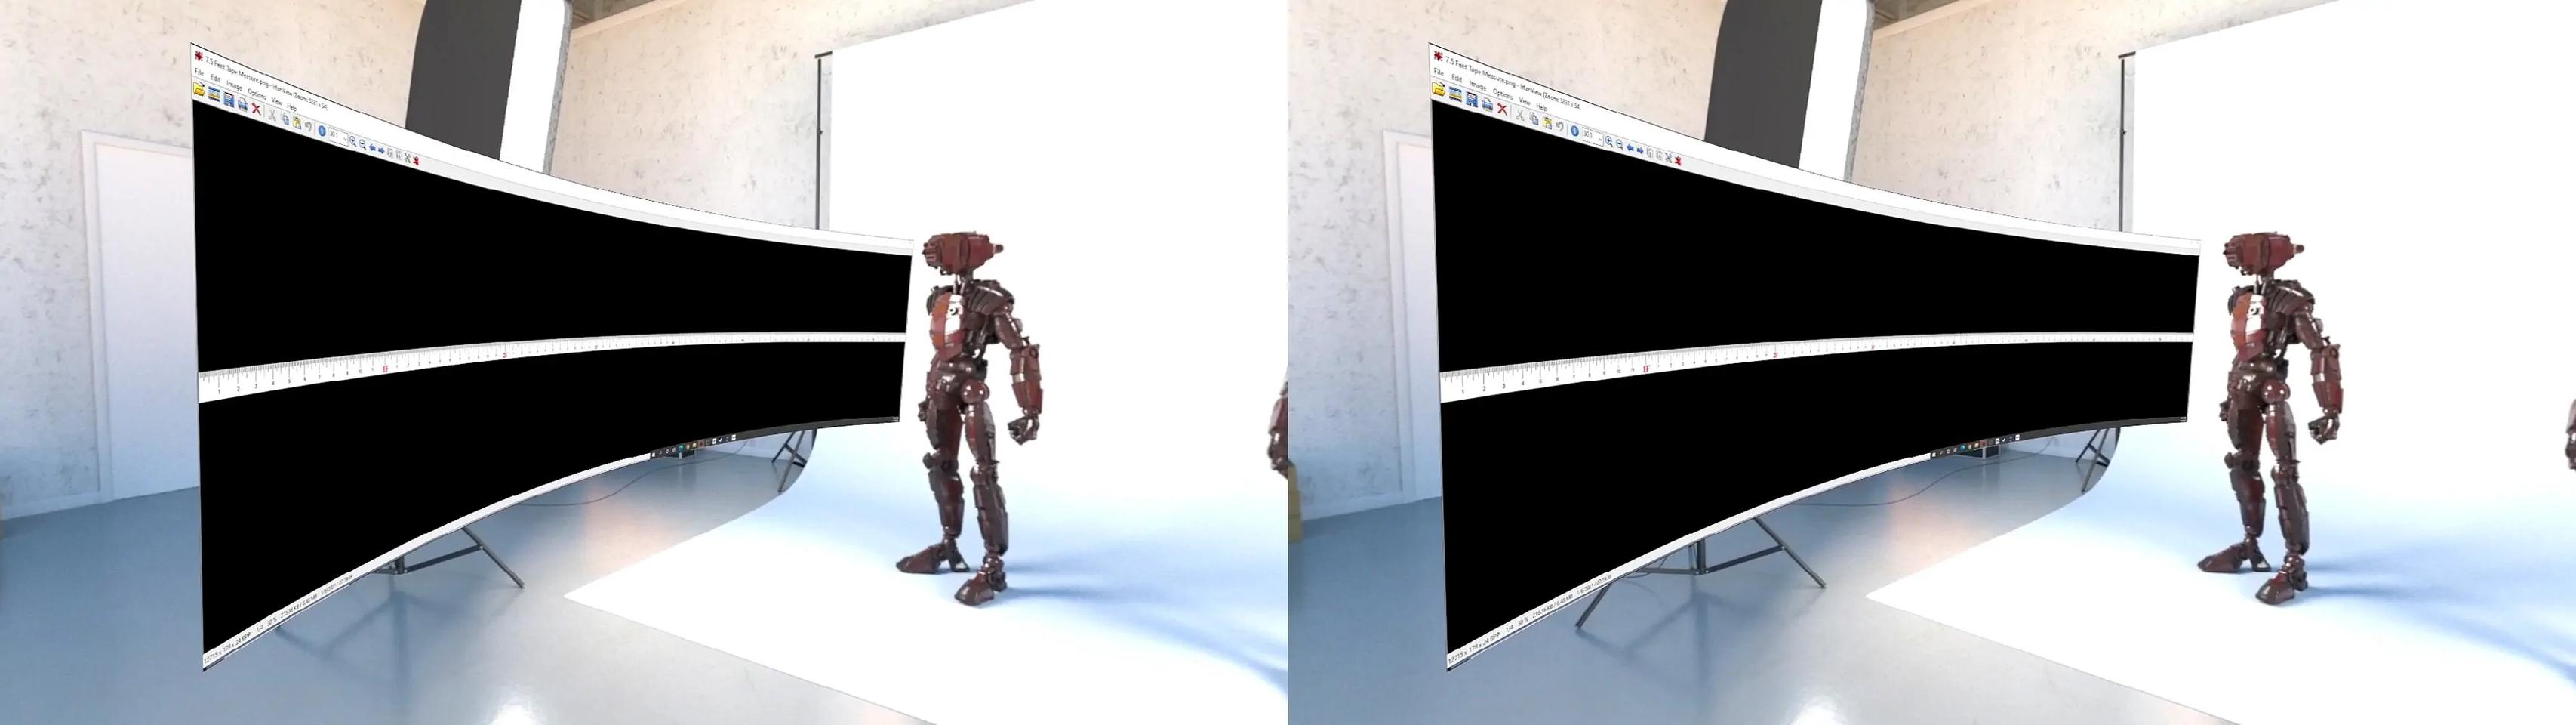 Measuring Actual Distance In Virtual Reality